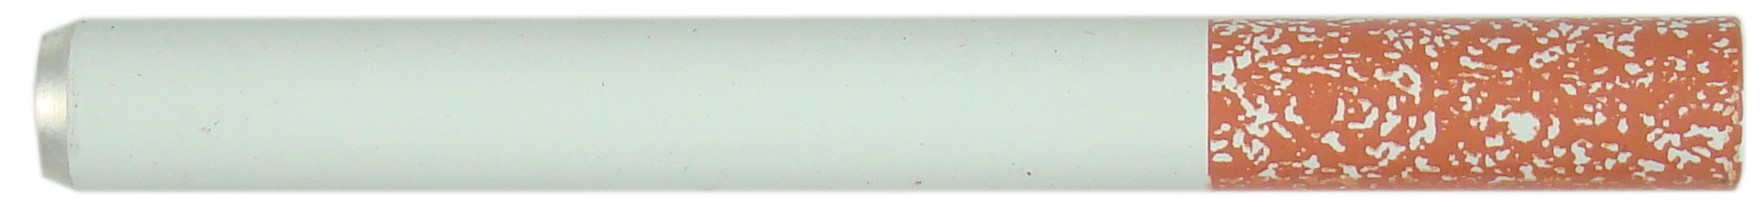 BAT16 - Standard Cigarette Design Tobacco Bat